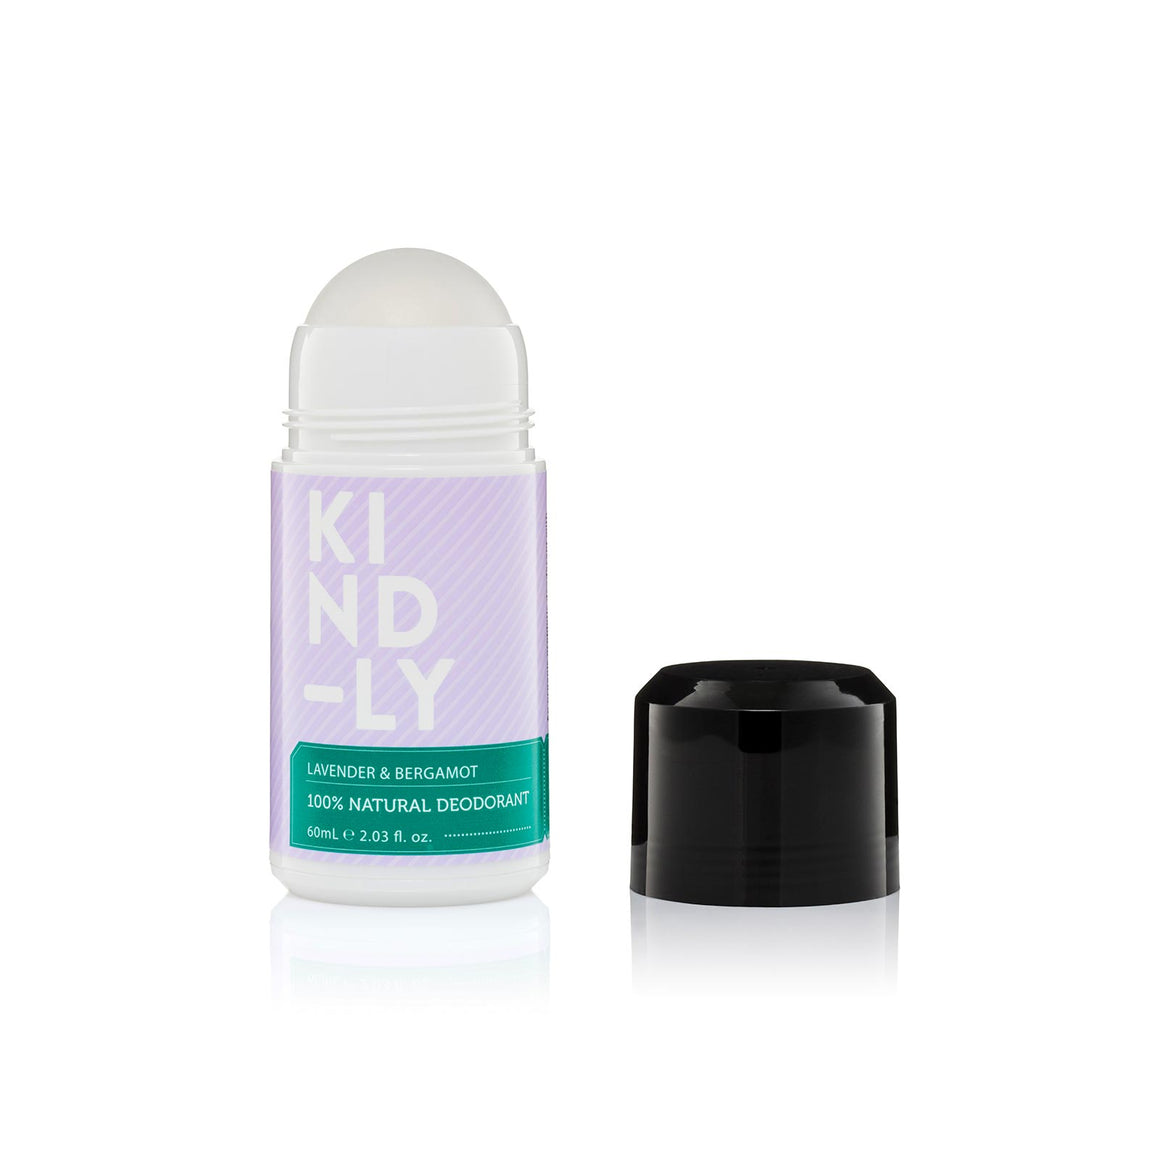 Kind-ly Lavender & Bergamot Deodorant- 60ml